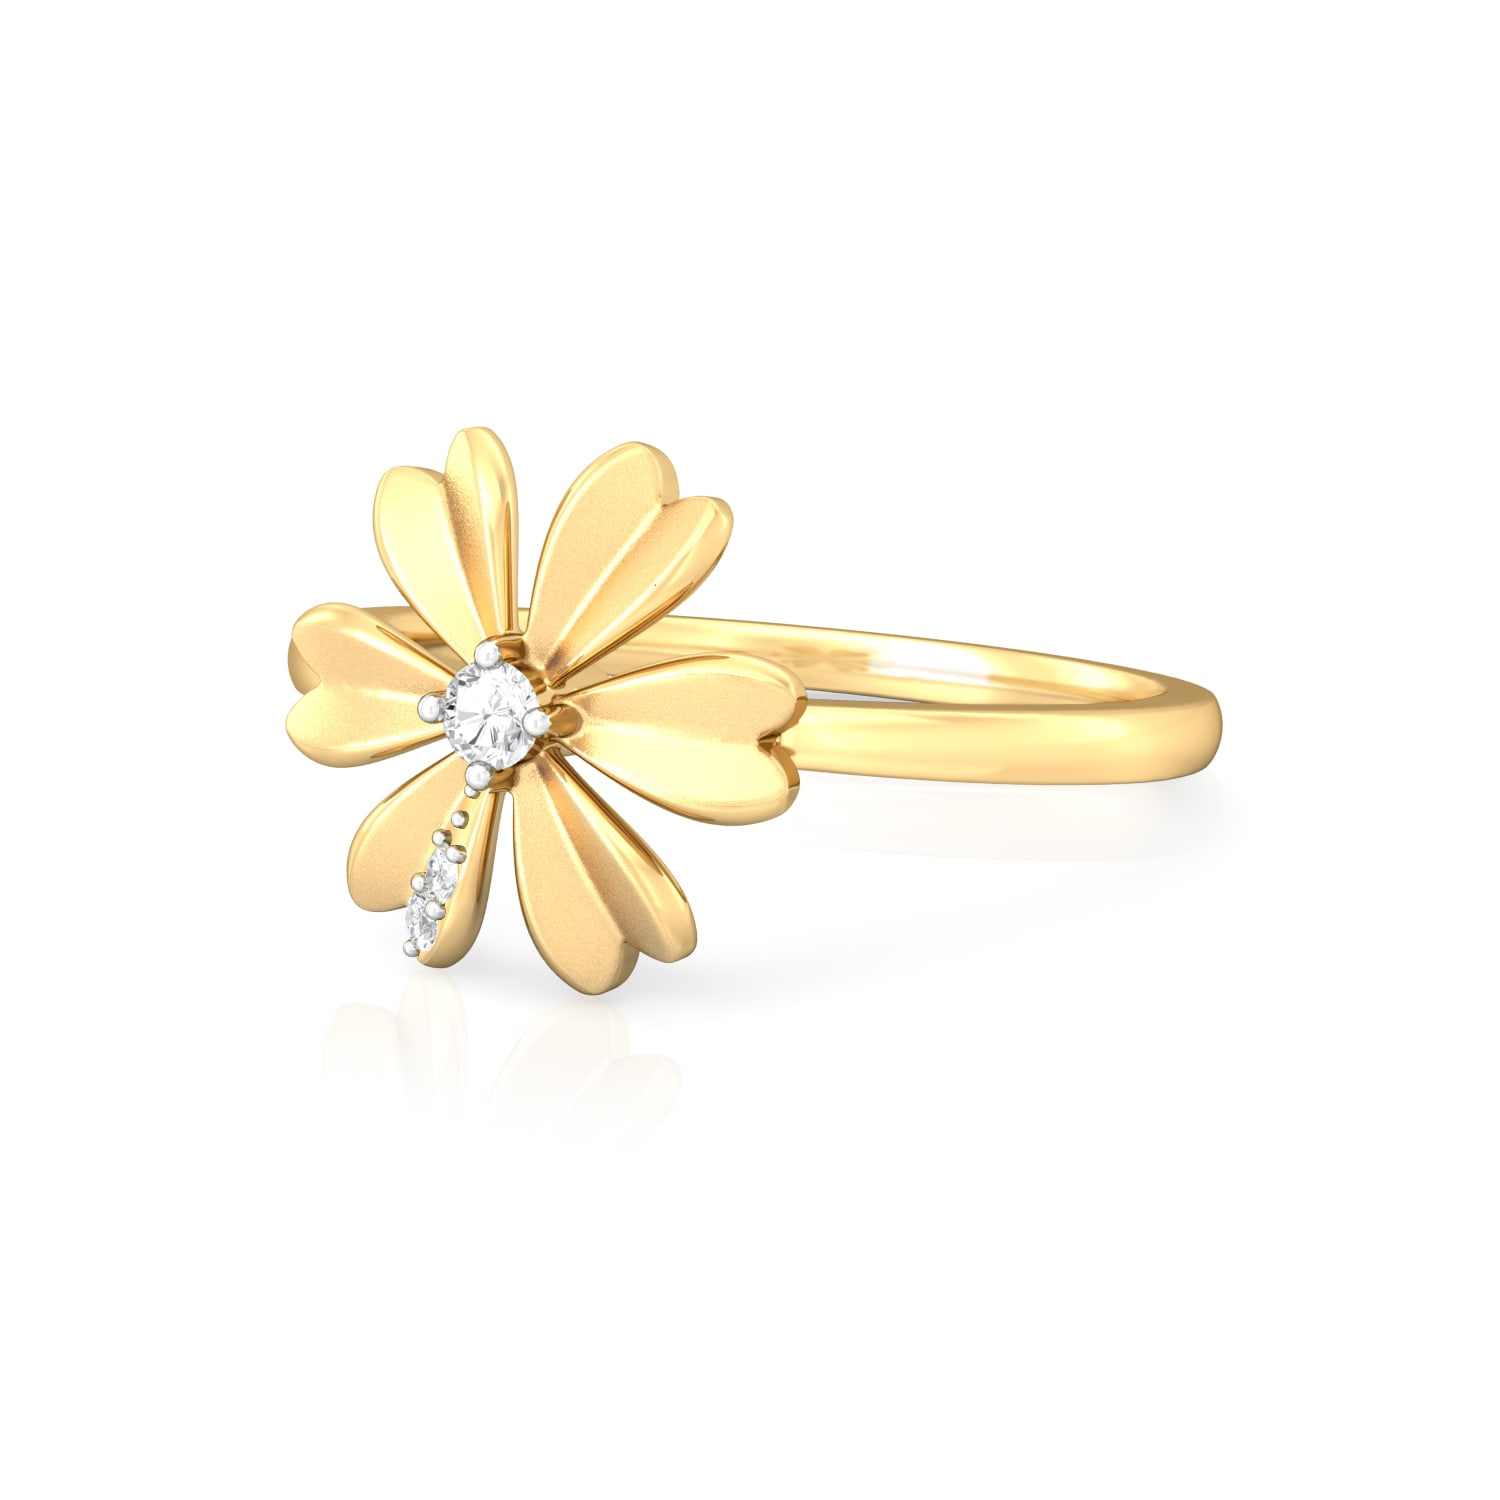 Peek-a-Bloom Diamond Rings